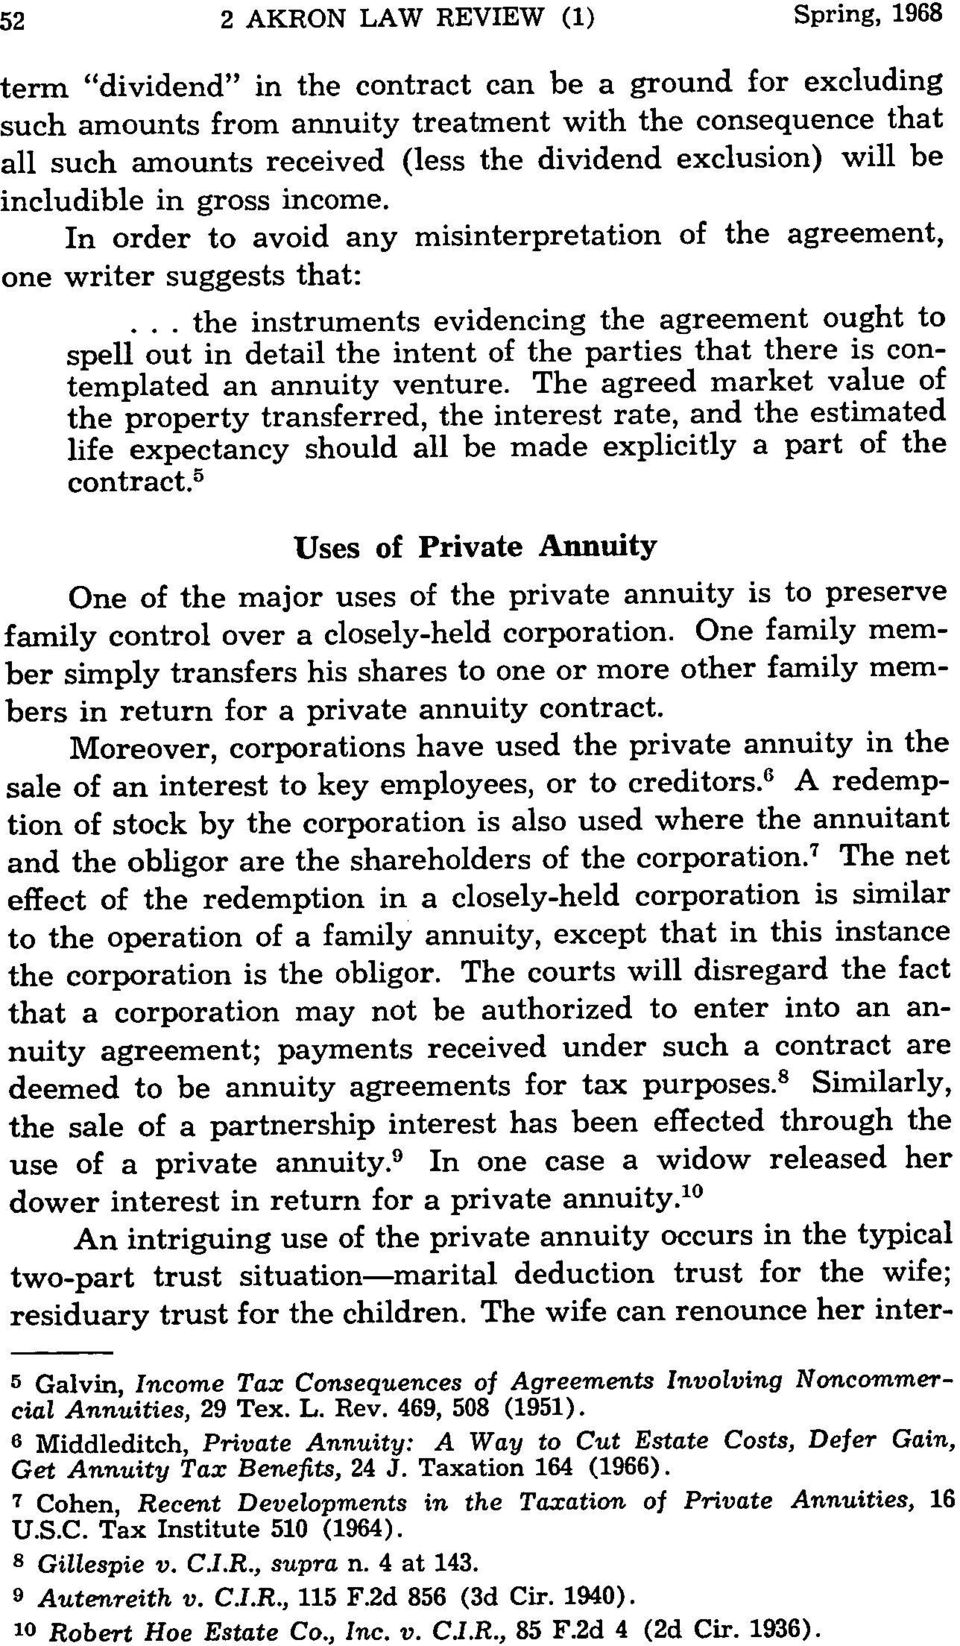 .. the instruments evidencing the agreement ought to spell out in detail the intent of the parties that there is contemplated an annuity venture.